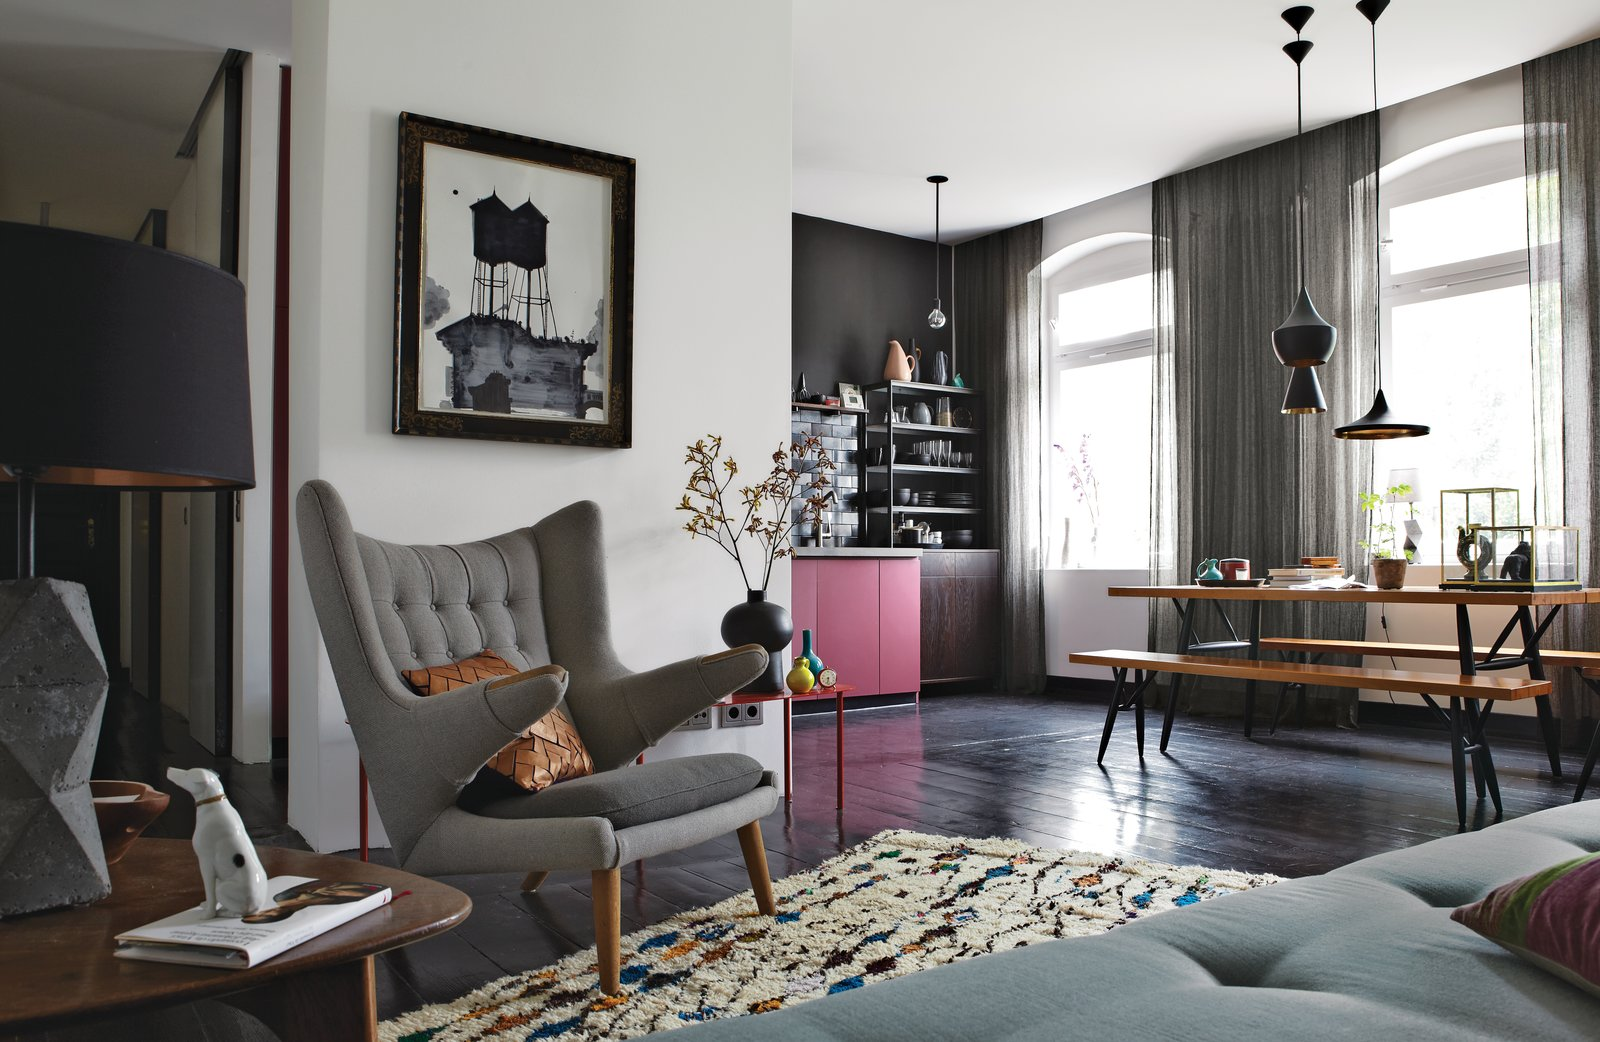 The old wood floors throughout the open-plan space are painted a dark eggplant. The vintage PP19 armchair is by Hans J. Wegner for PP Møbler. The painting above it is by Ruben Toledo, a friend of Peter Fehrentz, the resident. A trio of Tom Dixon lights hangs over the Pirkka dining table, with bench seating by Ilmari Tapiovaara for Artek. The Berber rug is from Morocco, purchased from the Paris shop Caravane.